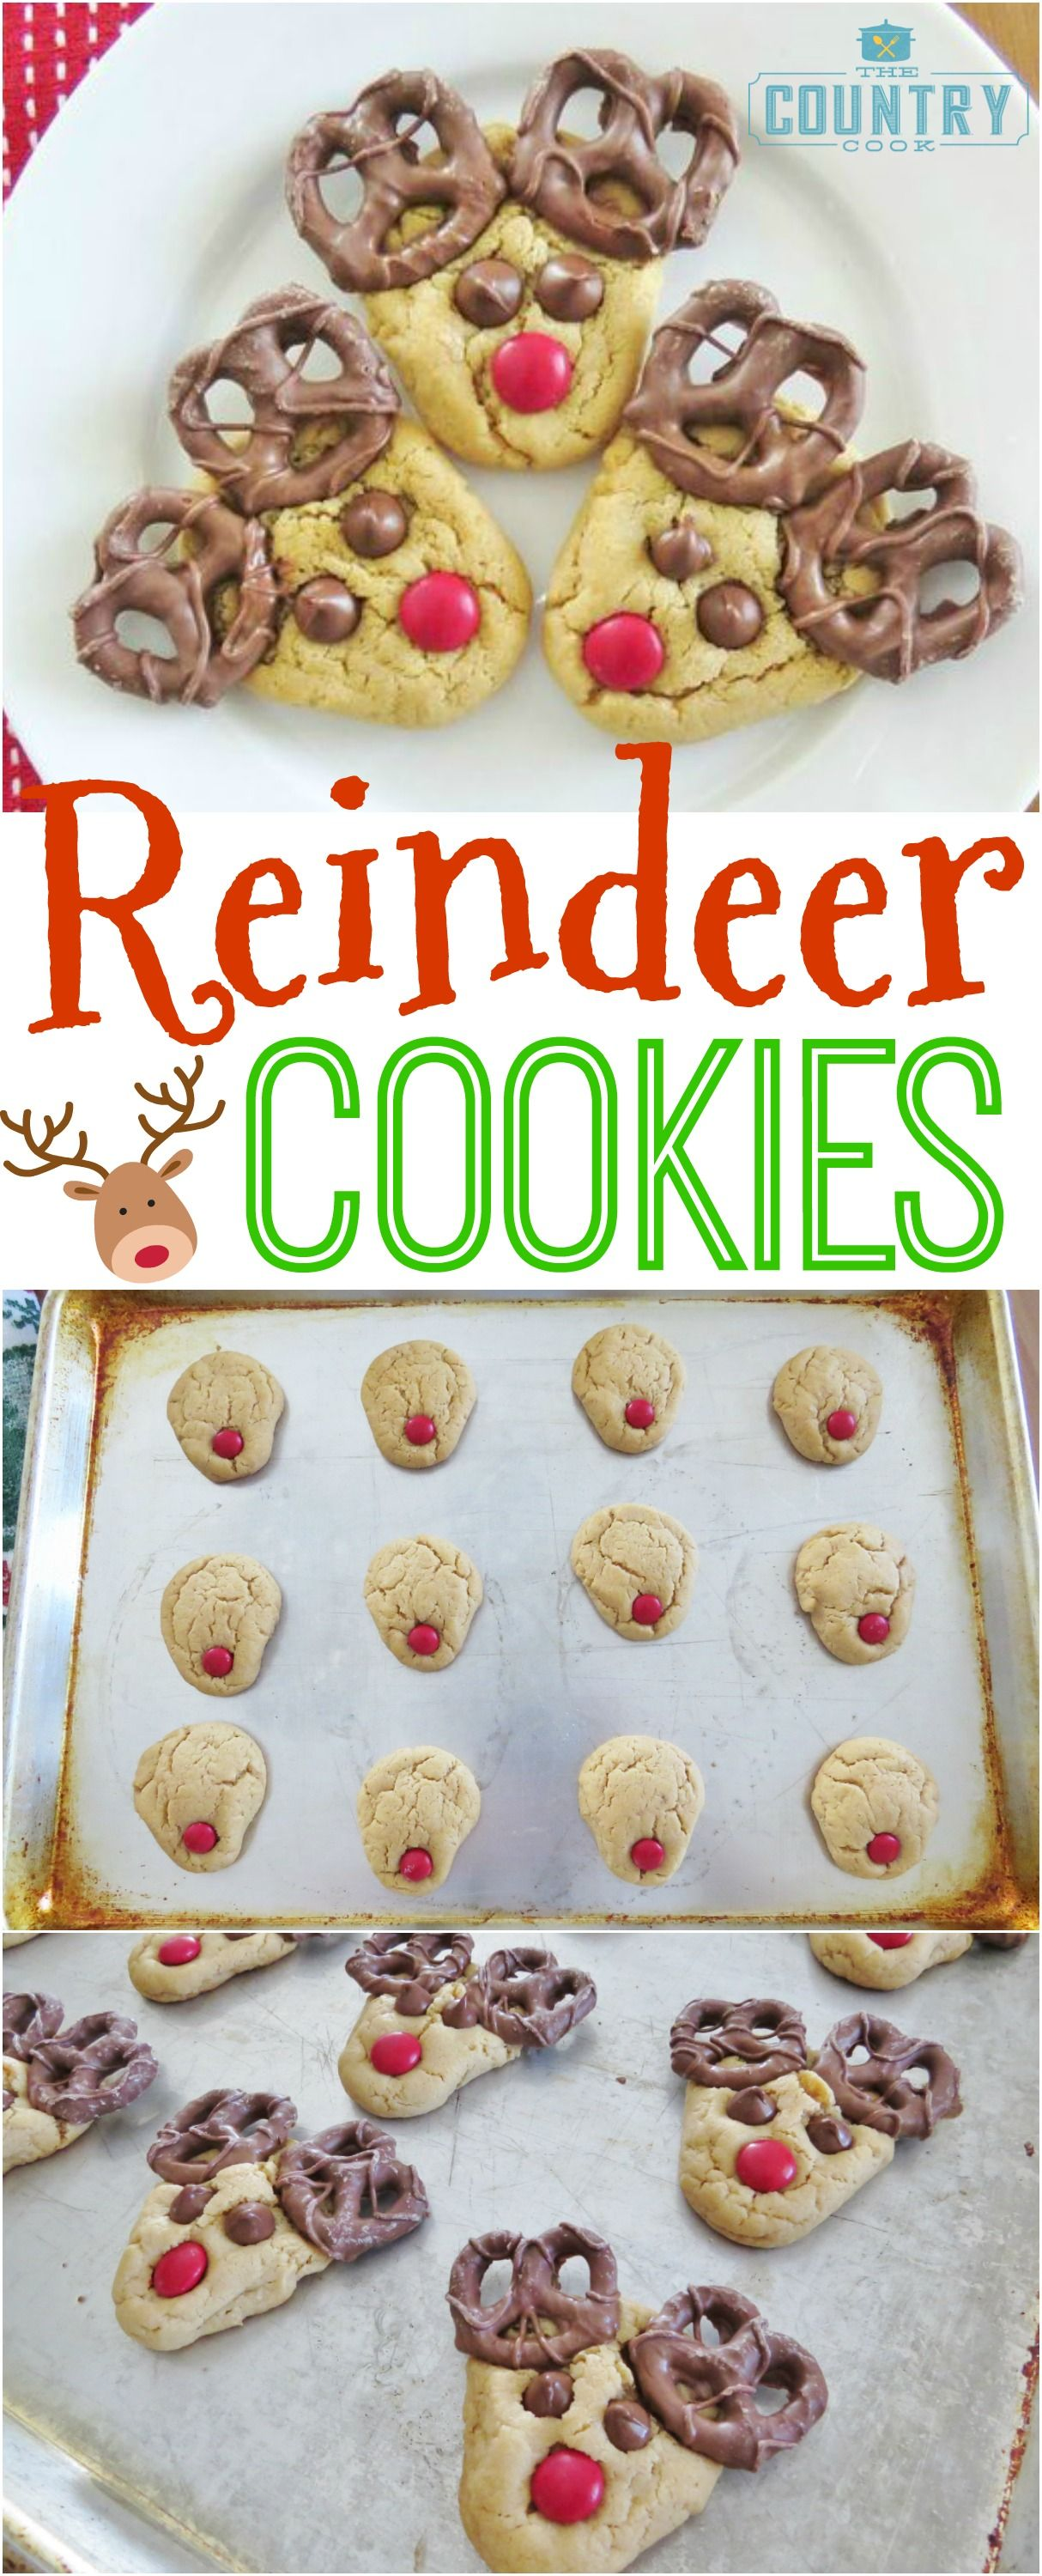 Easy And Adorable Reindeer Cookies Recipe From The Country Cook